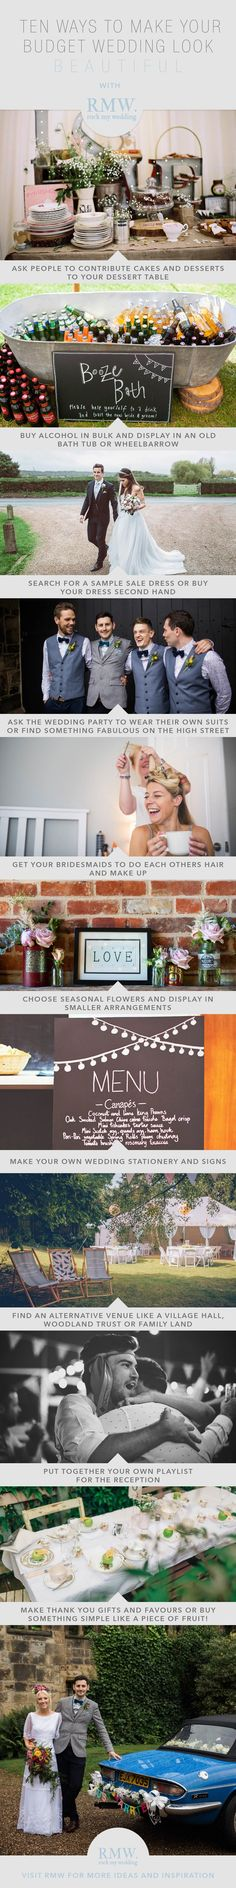 10 ways to make your budget wedding look beautiful | http://www.rockmywedding.co.uk/how-to-have-a-beautiful-budget-wedding/